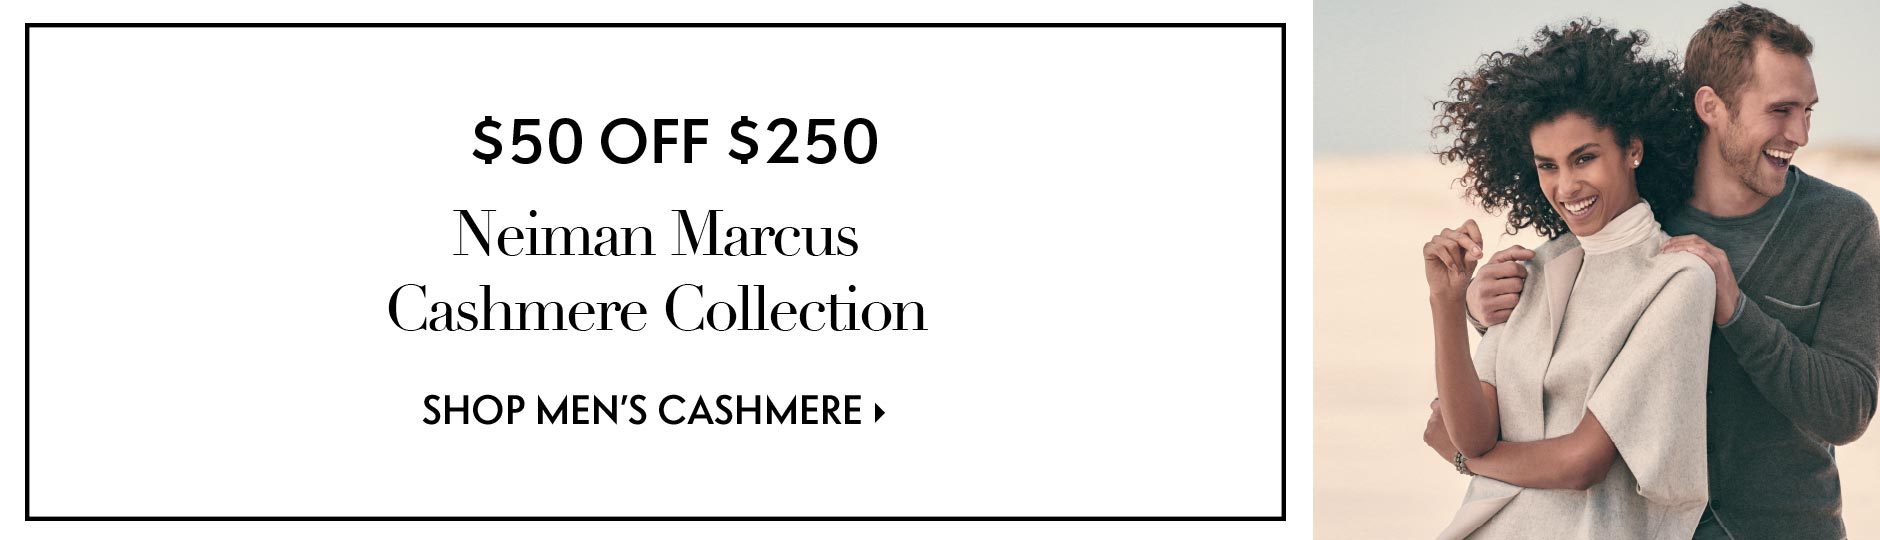 $50 Off $250: Neiman Marcus Cashmere Collection - Shop Men's Cashmere